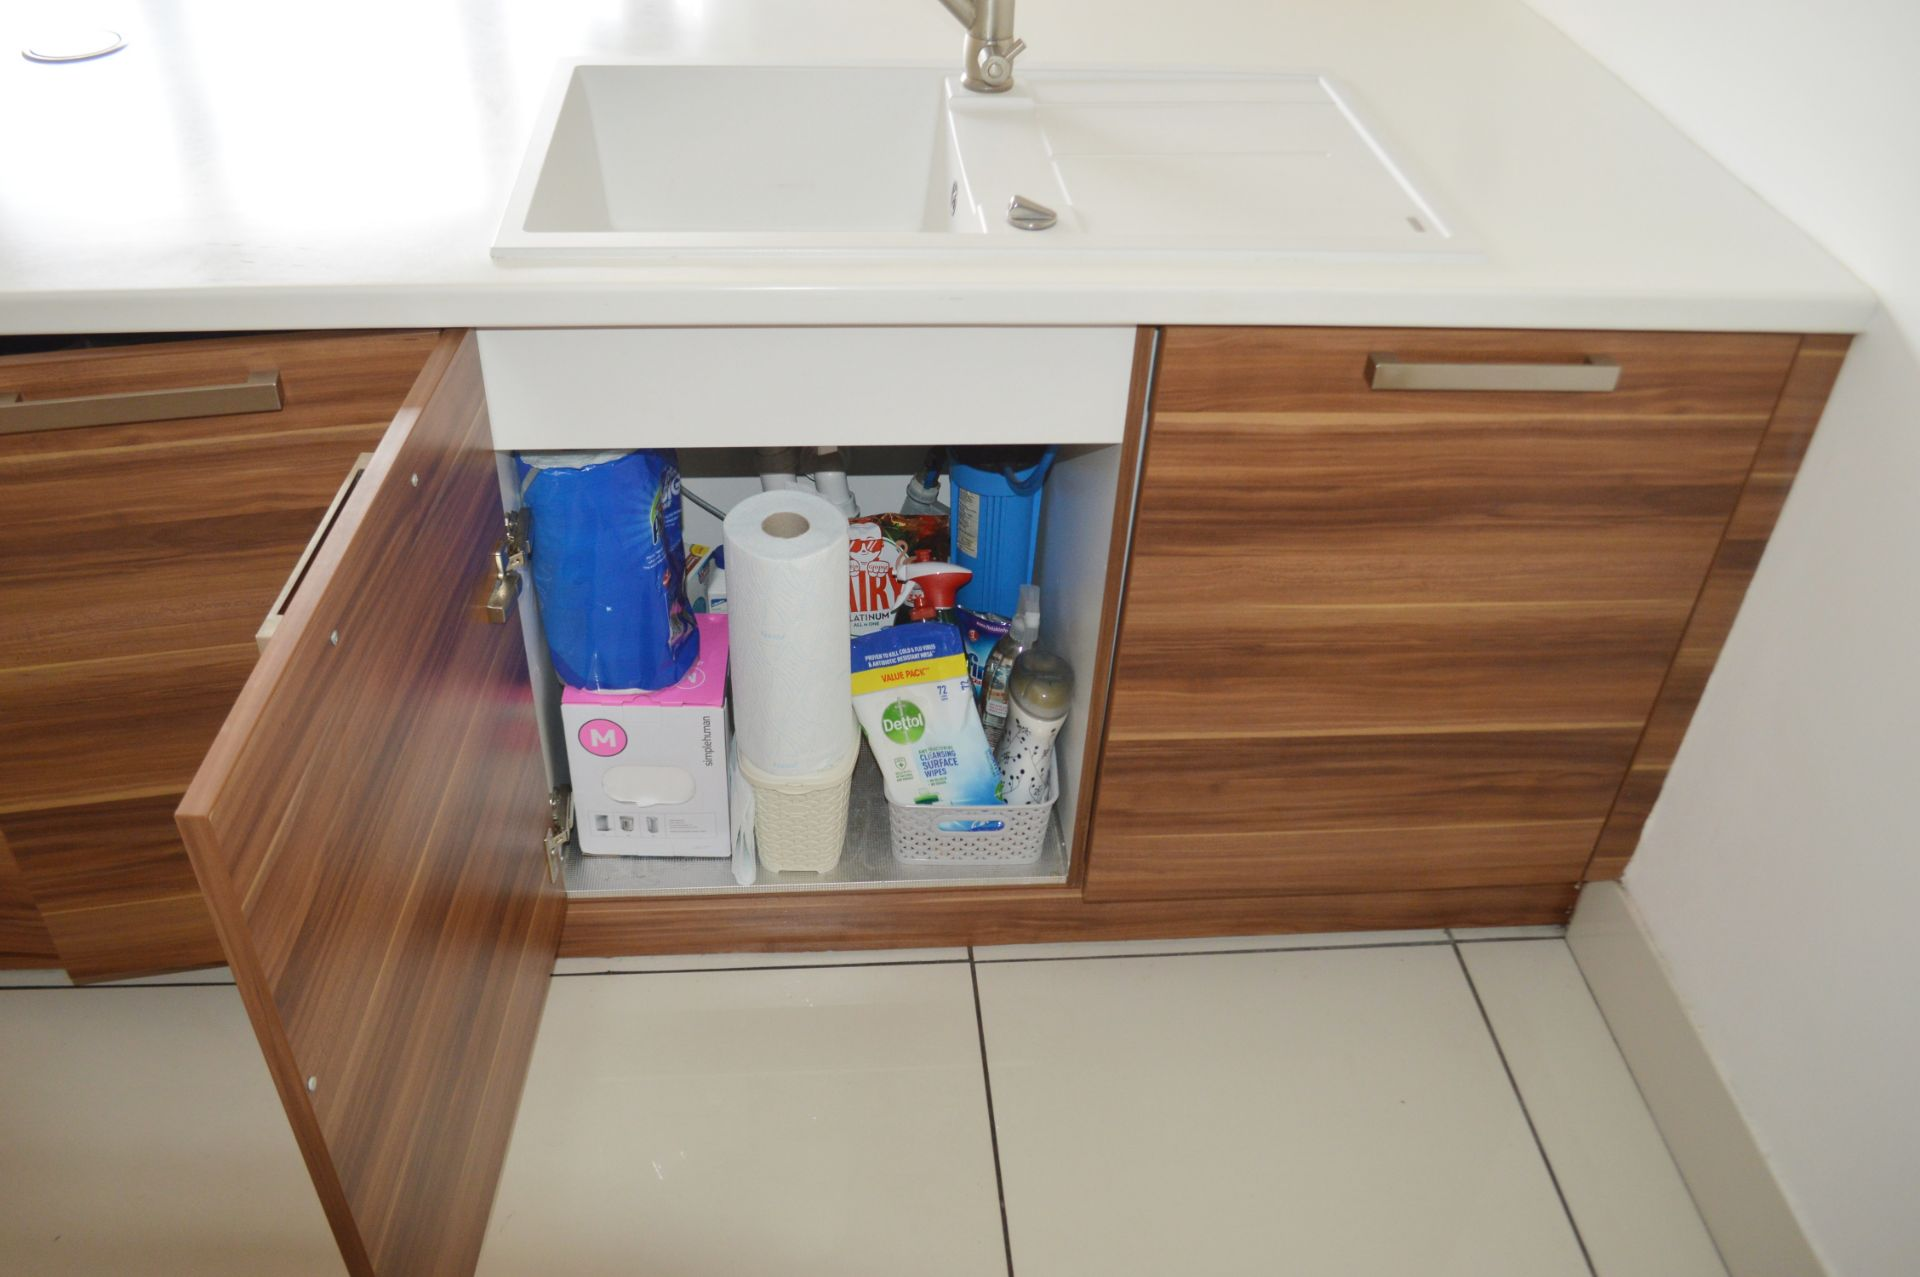 1 x Contemporary Bespoke Fitted Kitchen With Integrated Neff Branded Appliances, Quartz Worktops - Image 31 of 52